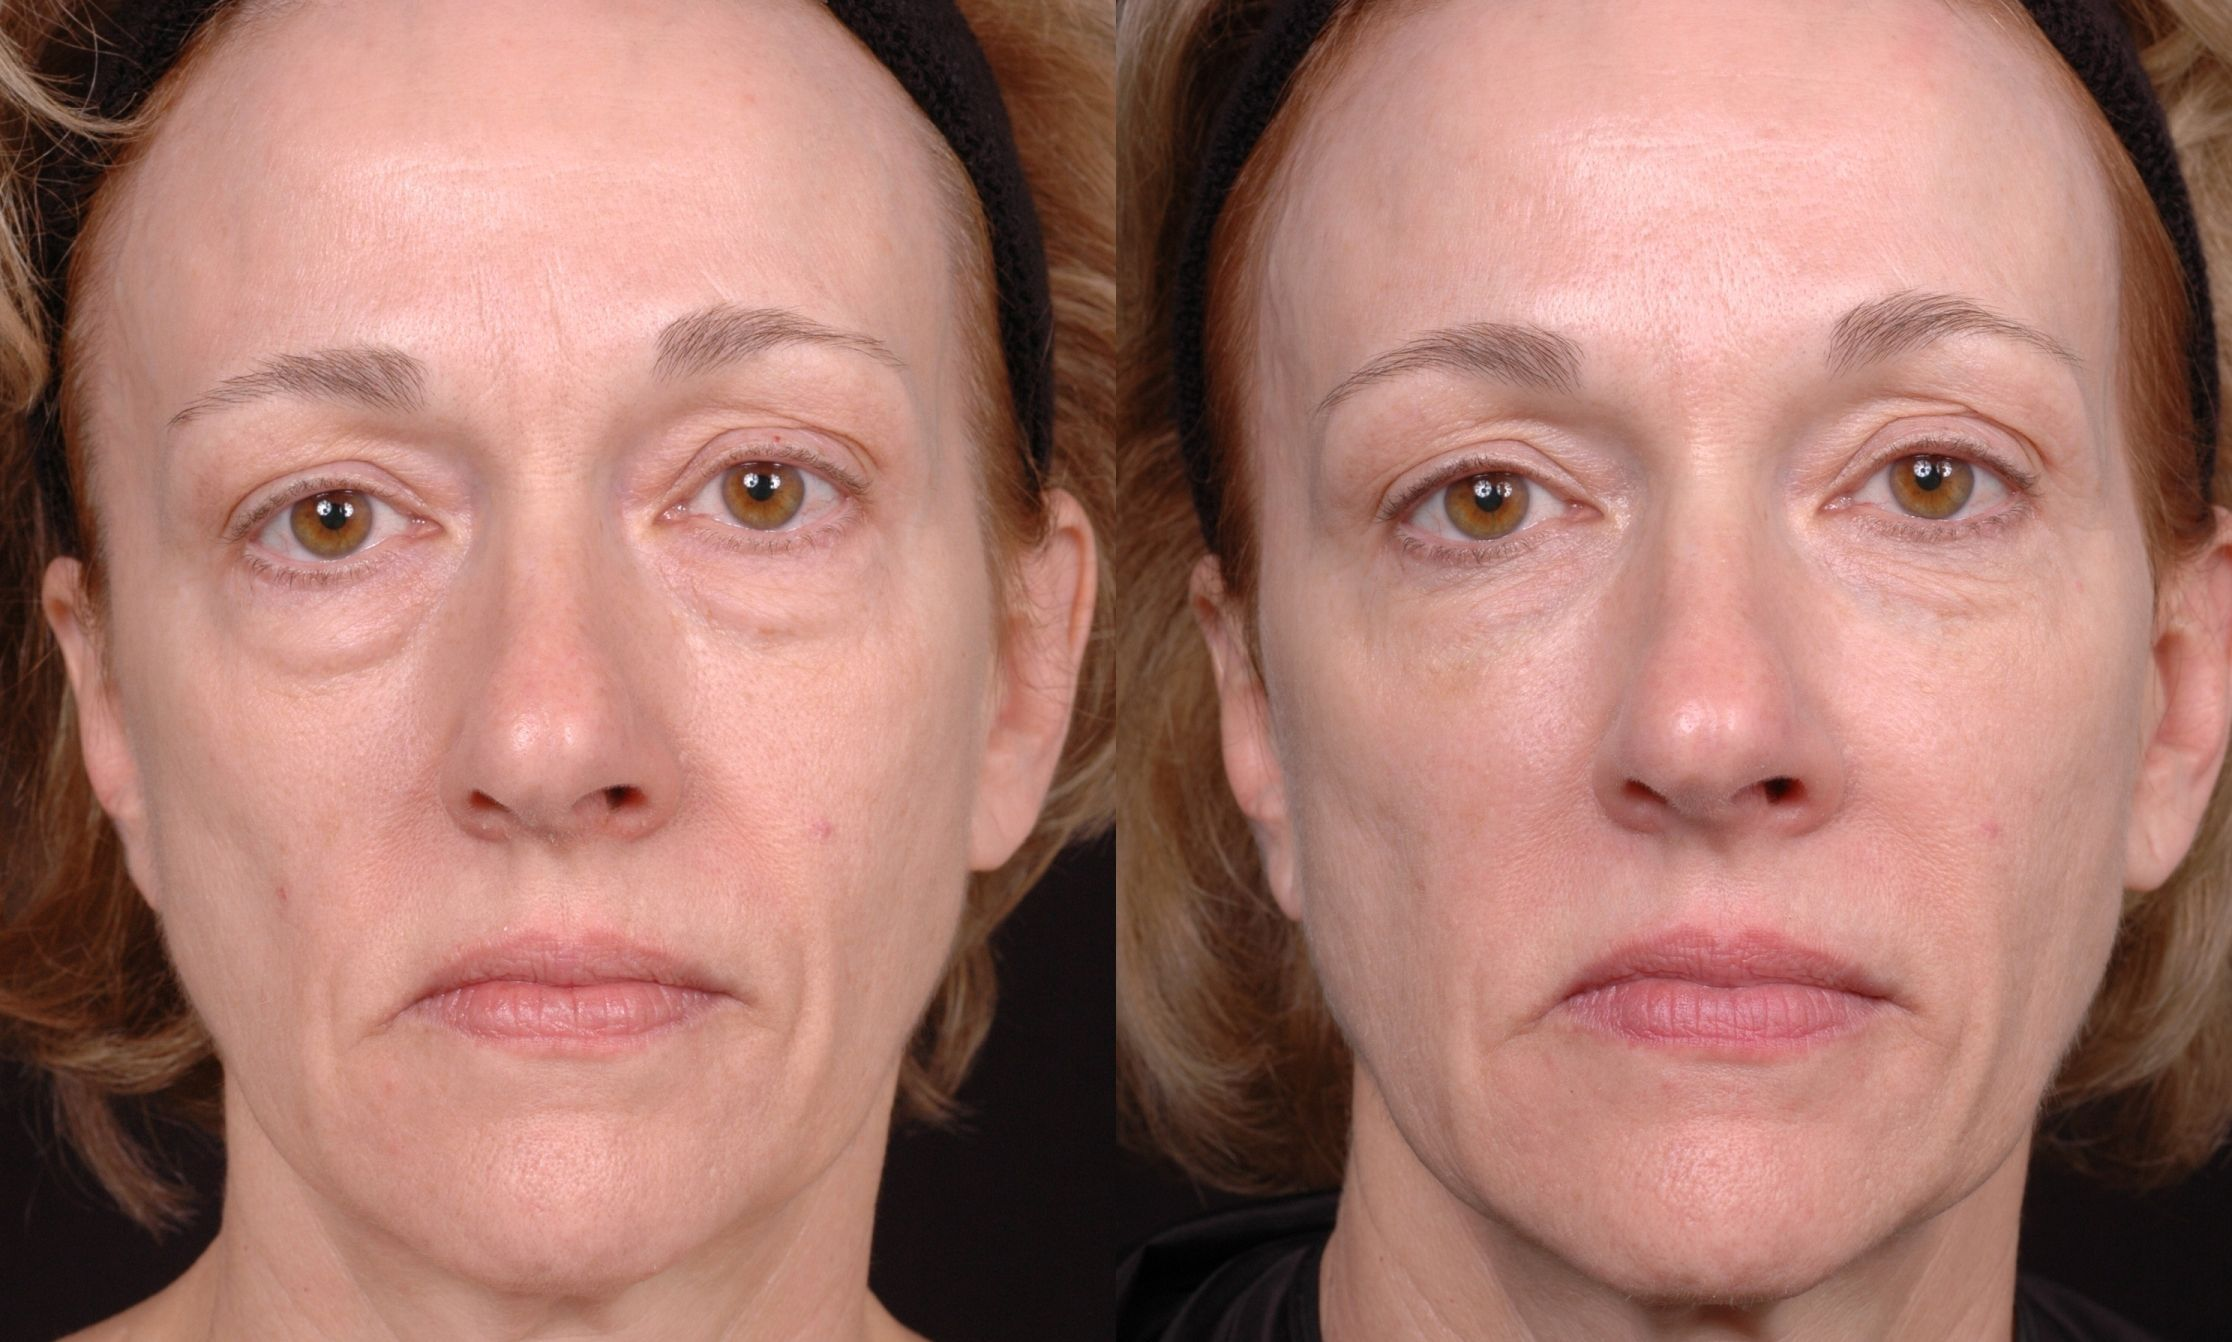 Chinese Acupressure Facelift Toning Exercises To Look ...